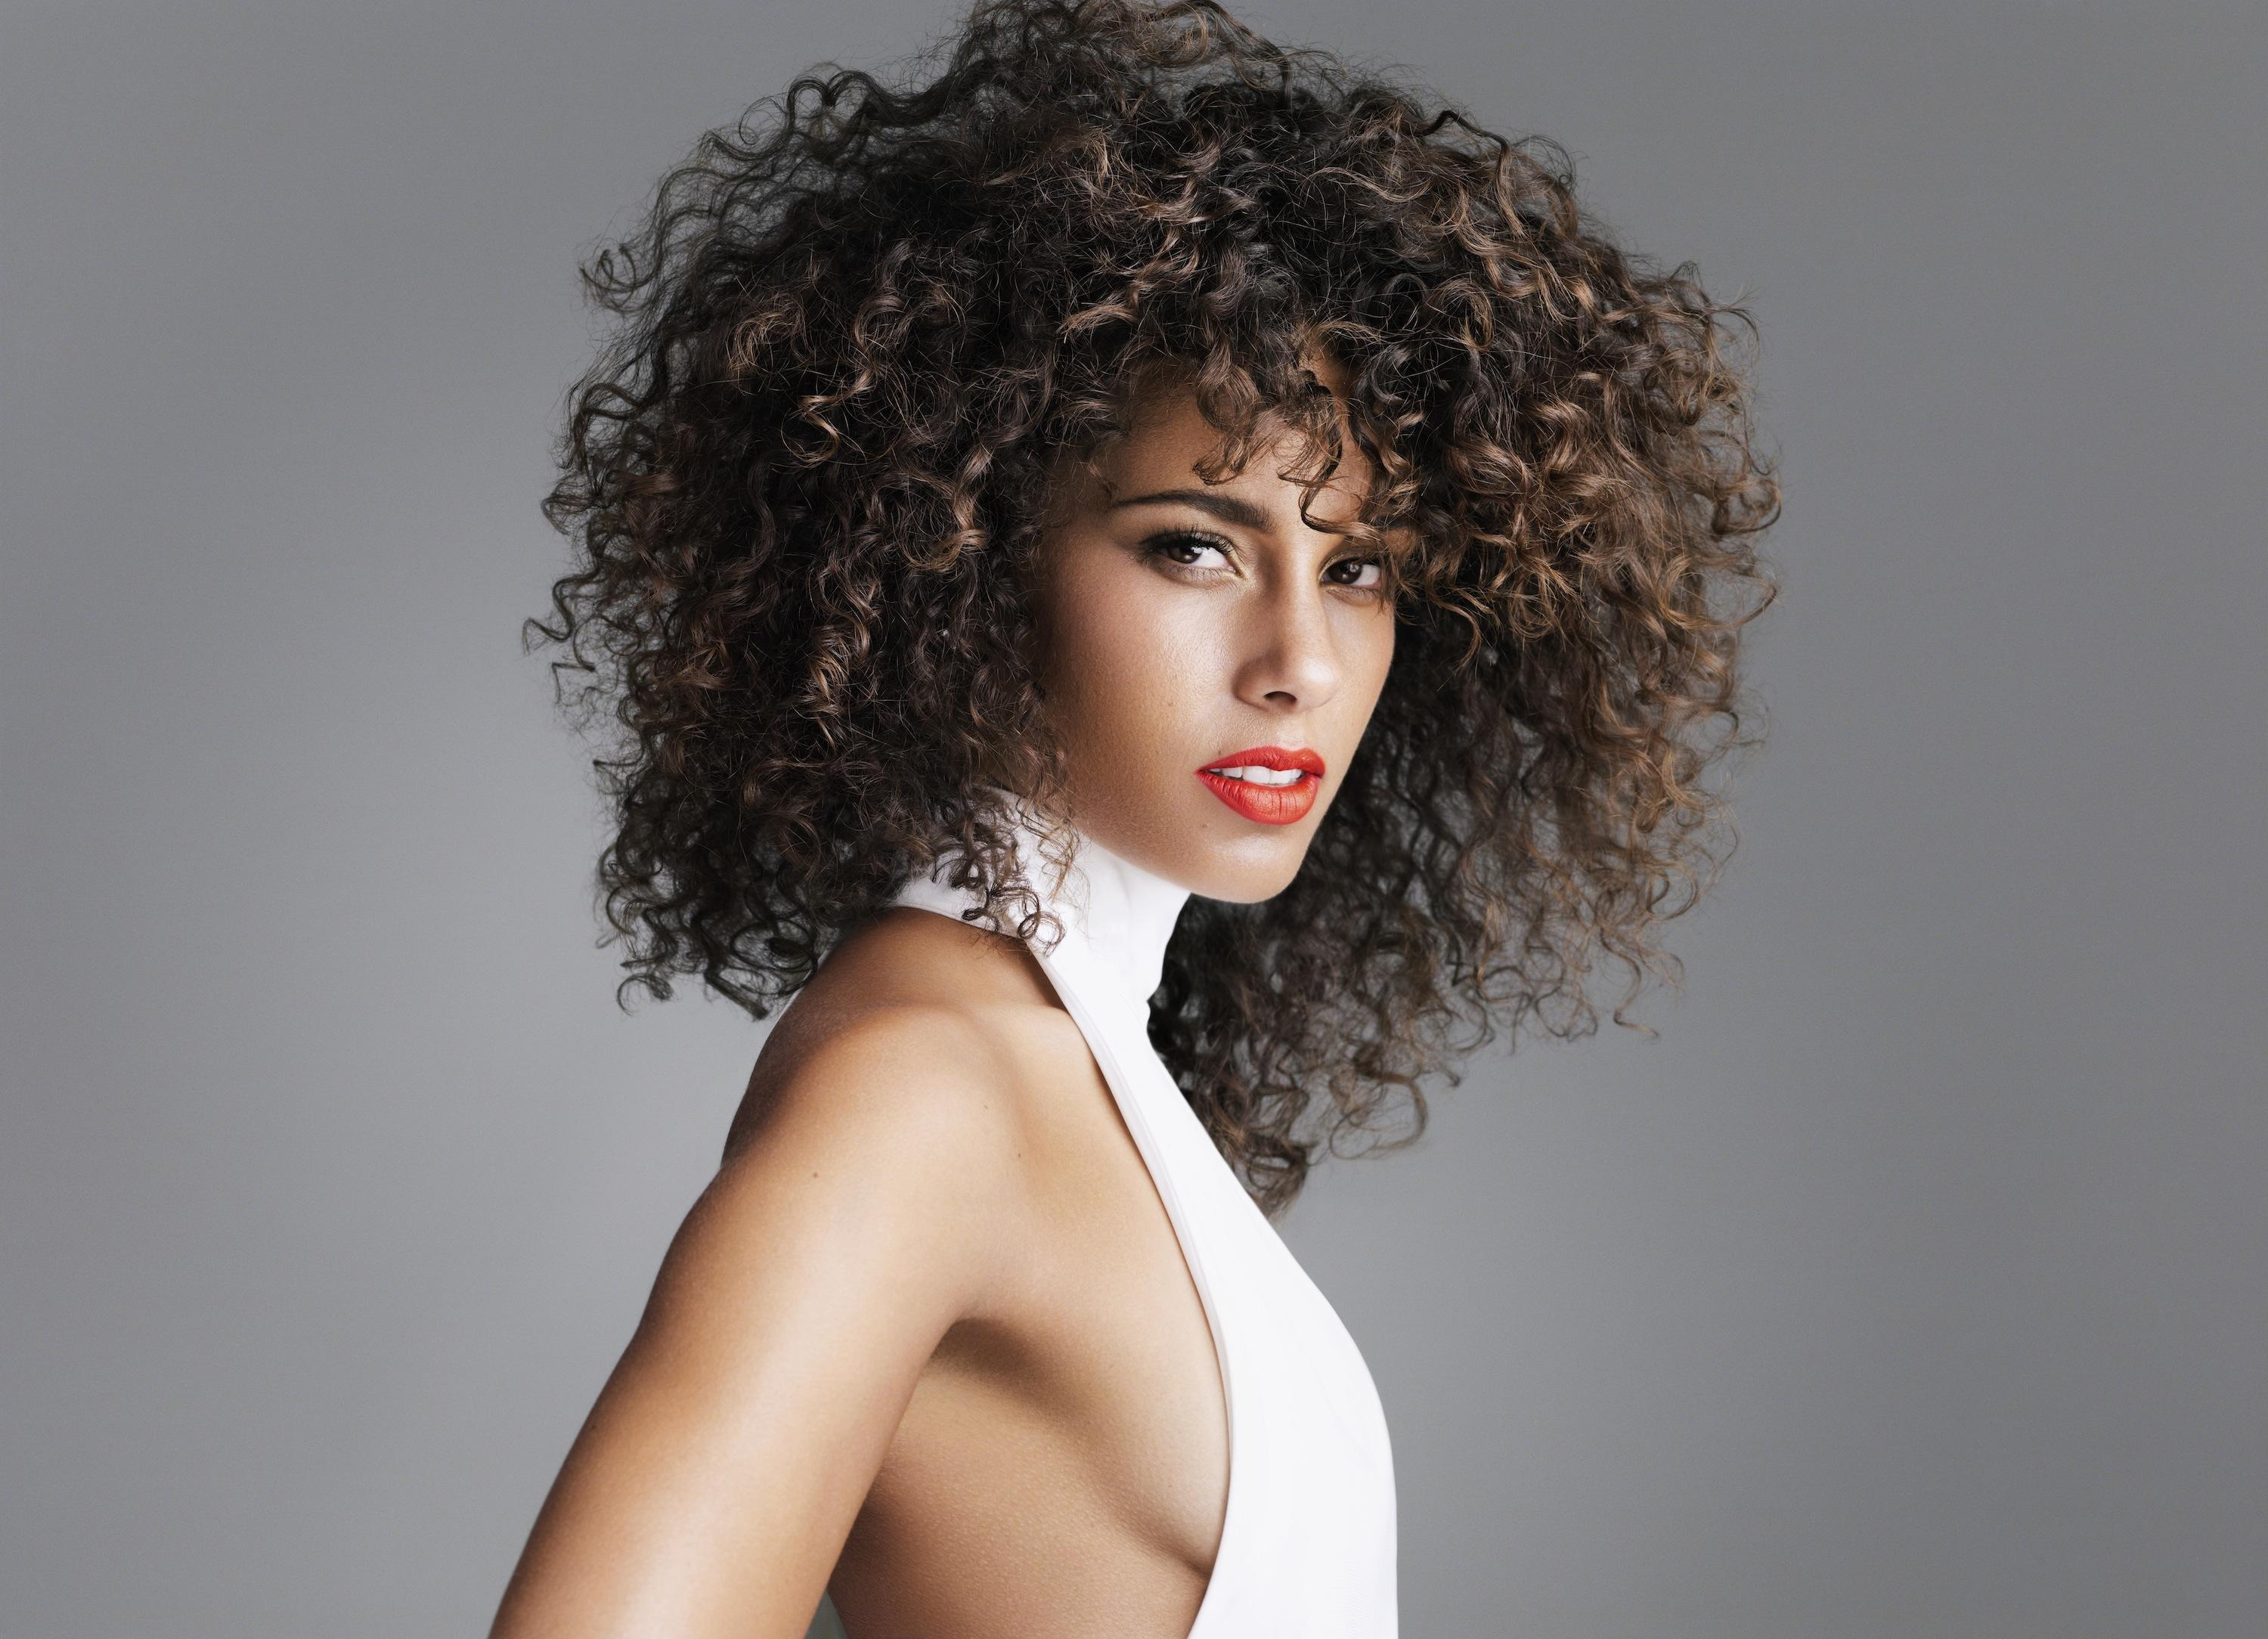 Alicia Keys Curly Hair Style Cool Curly Hair